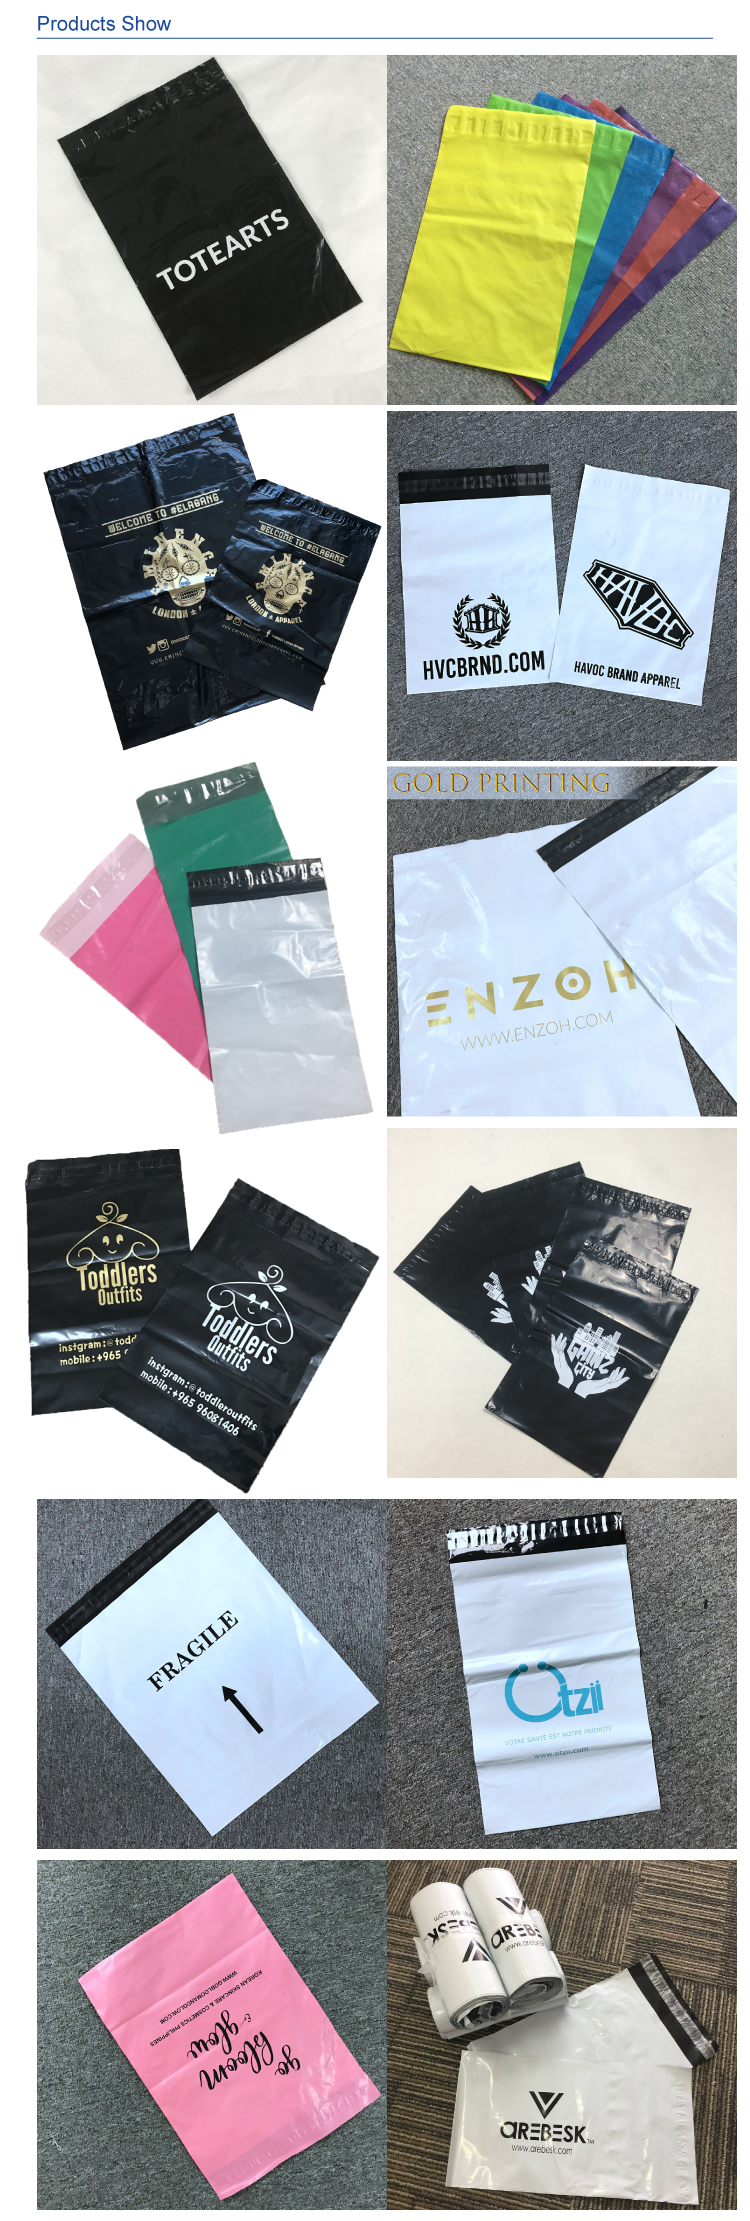 13x18 black Self Adhesive Waterproof and Tear-proof Poly Mailer Bags with your own logo